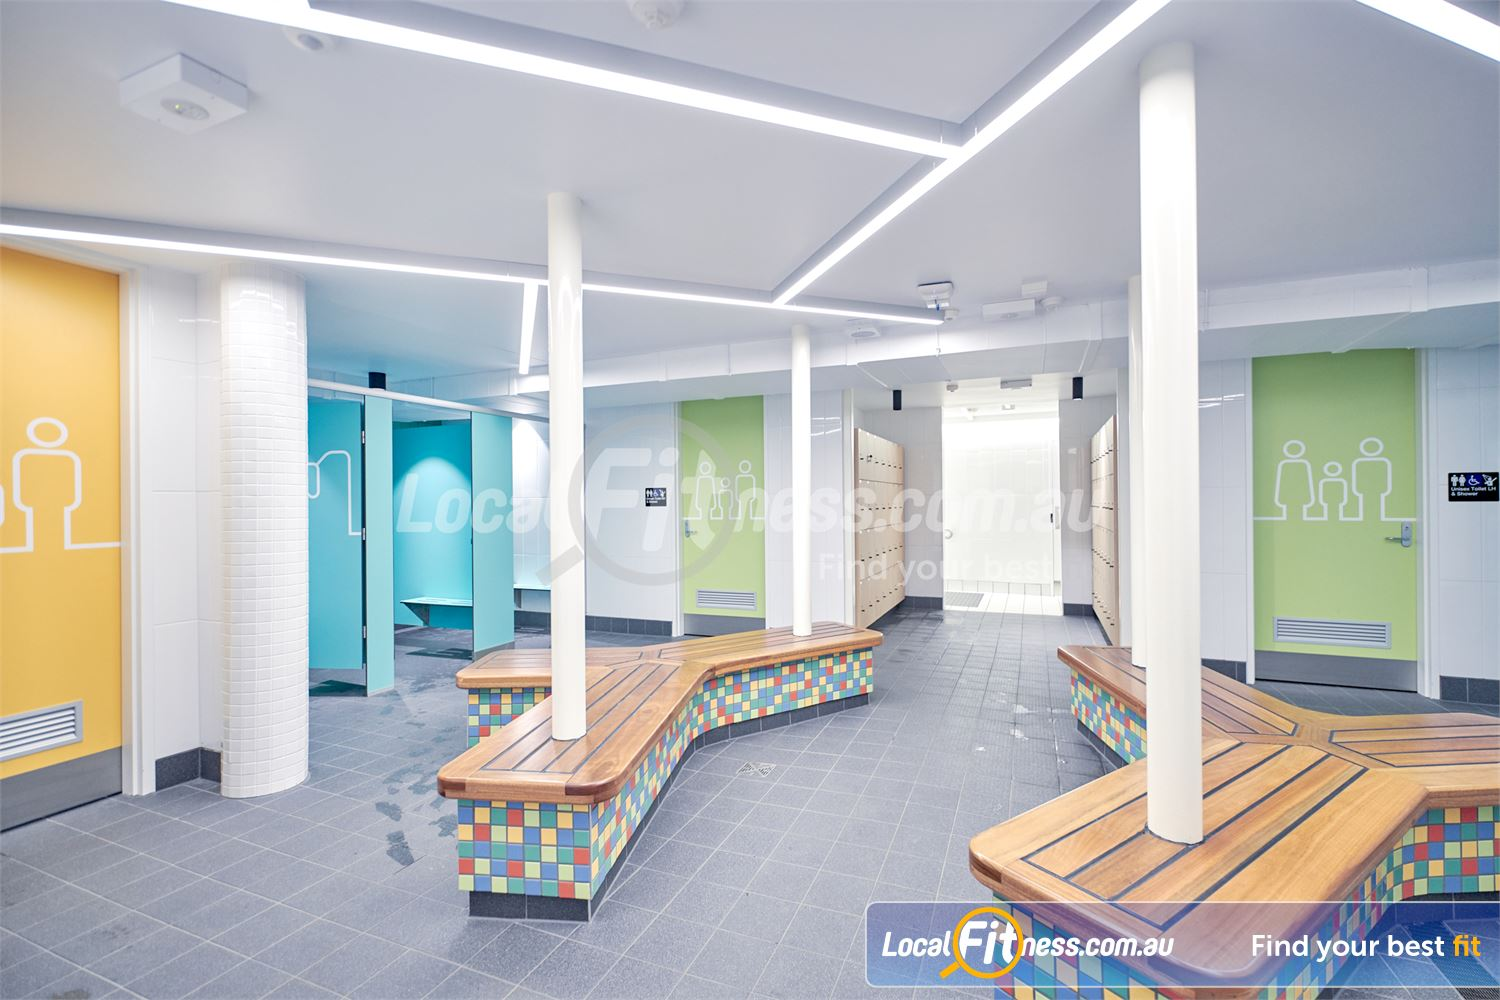 Eltham Leisure Centre Near North Warrandyte Family change village and dedicated change spaces for schools and groups.